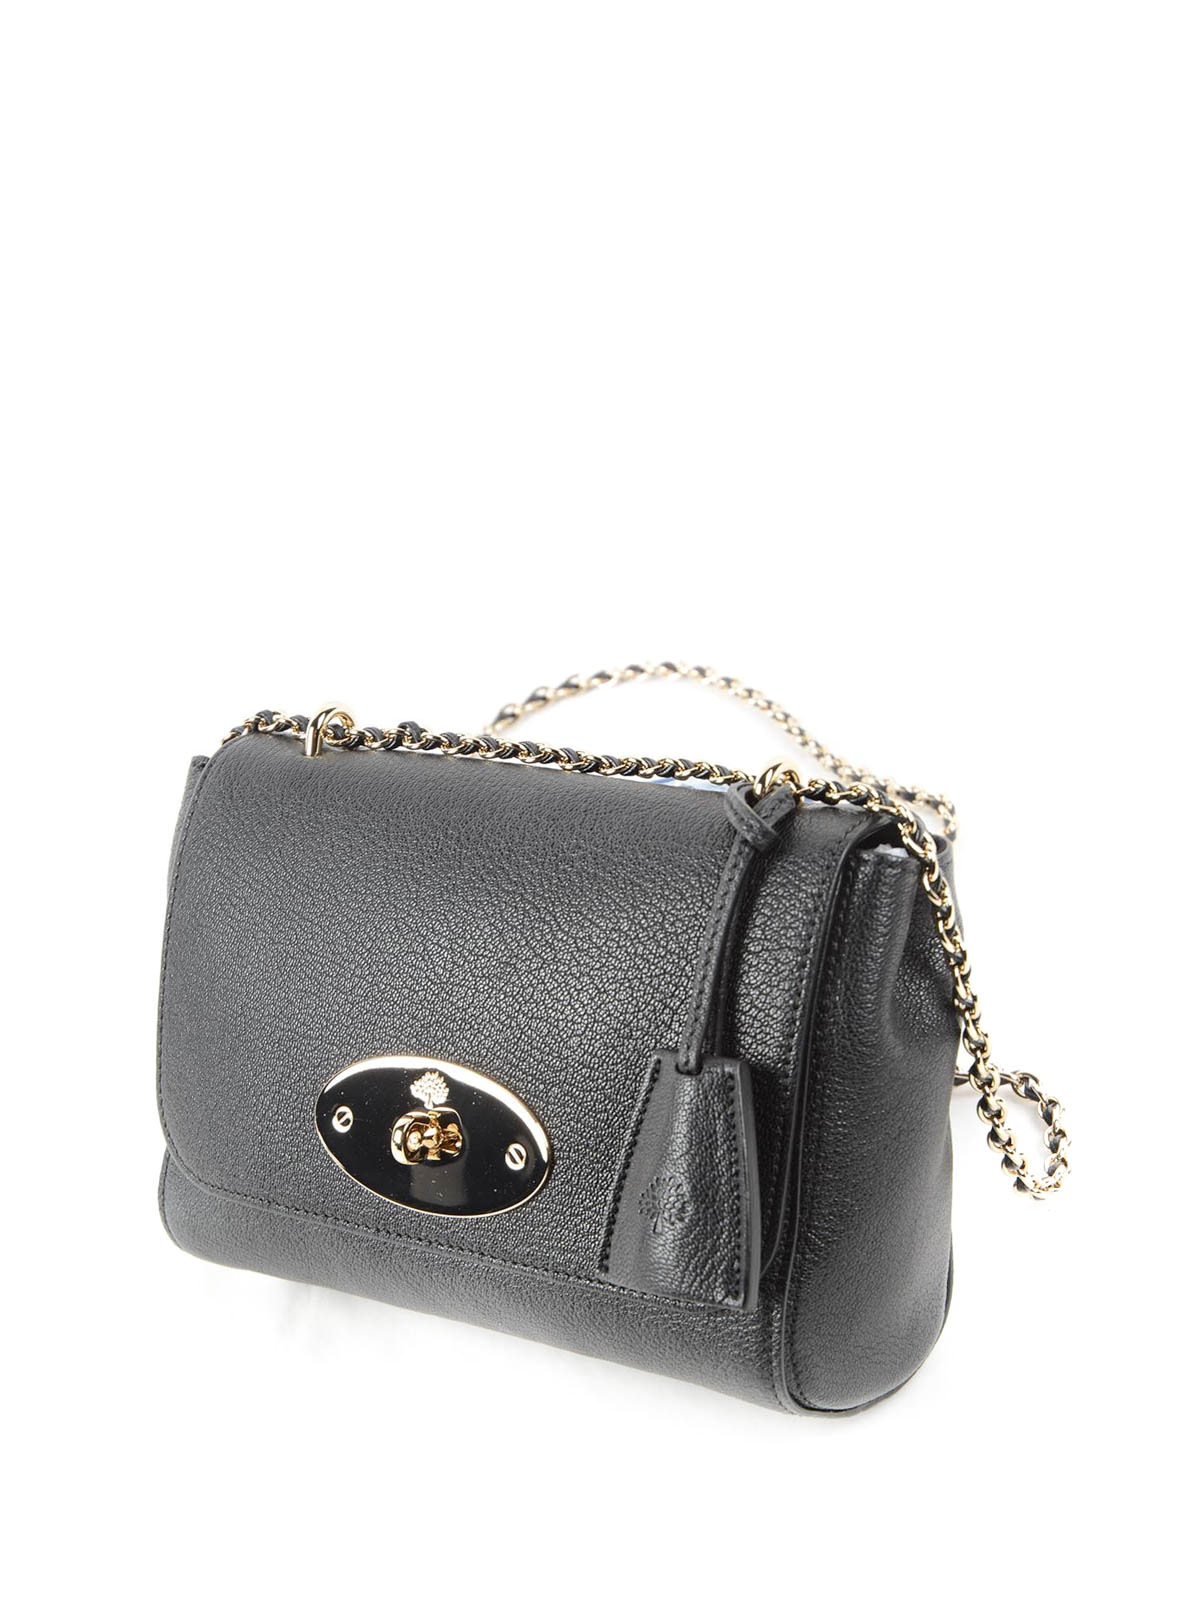 0b44853df9 Mulberry - Lily leather crossbody bag - cross body bags - HH3288 874A100